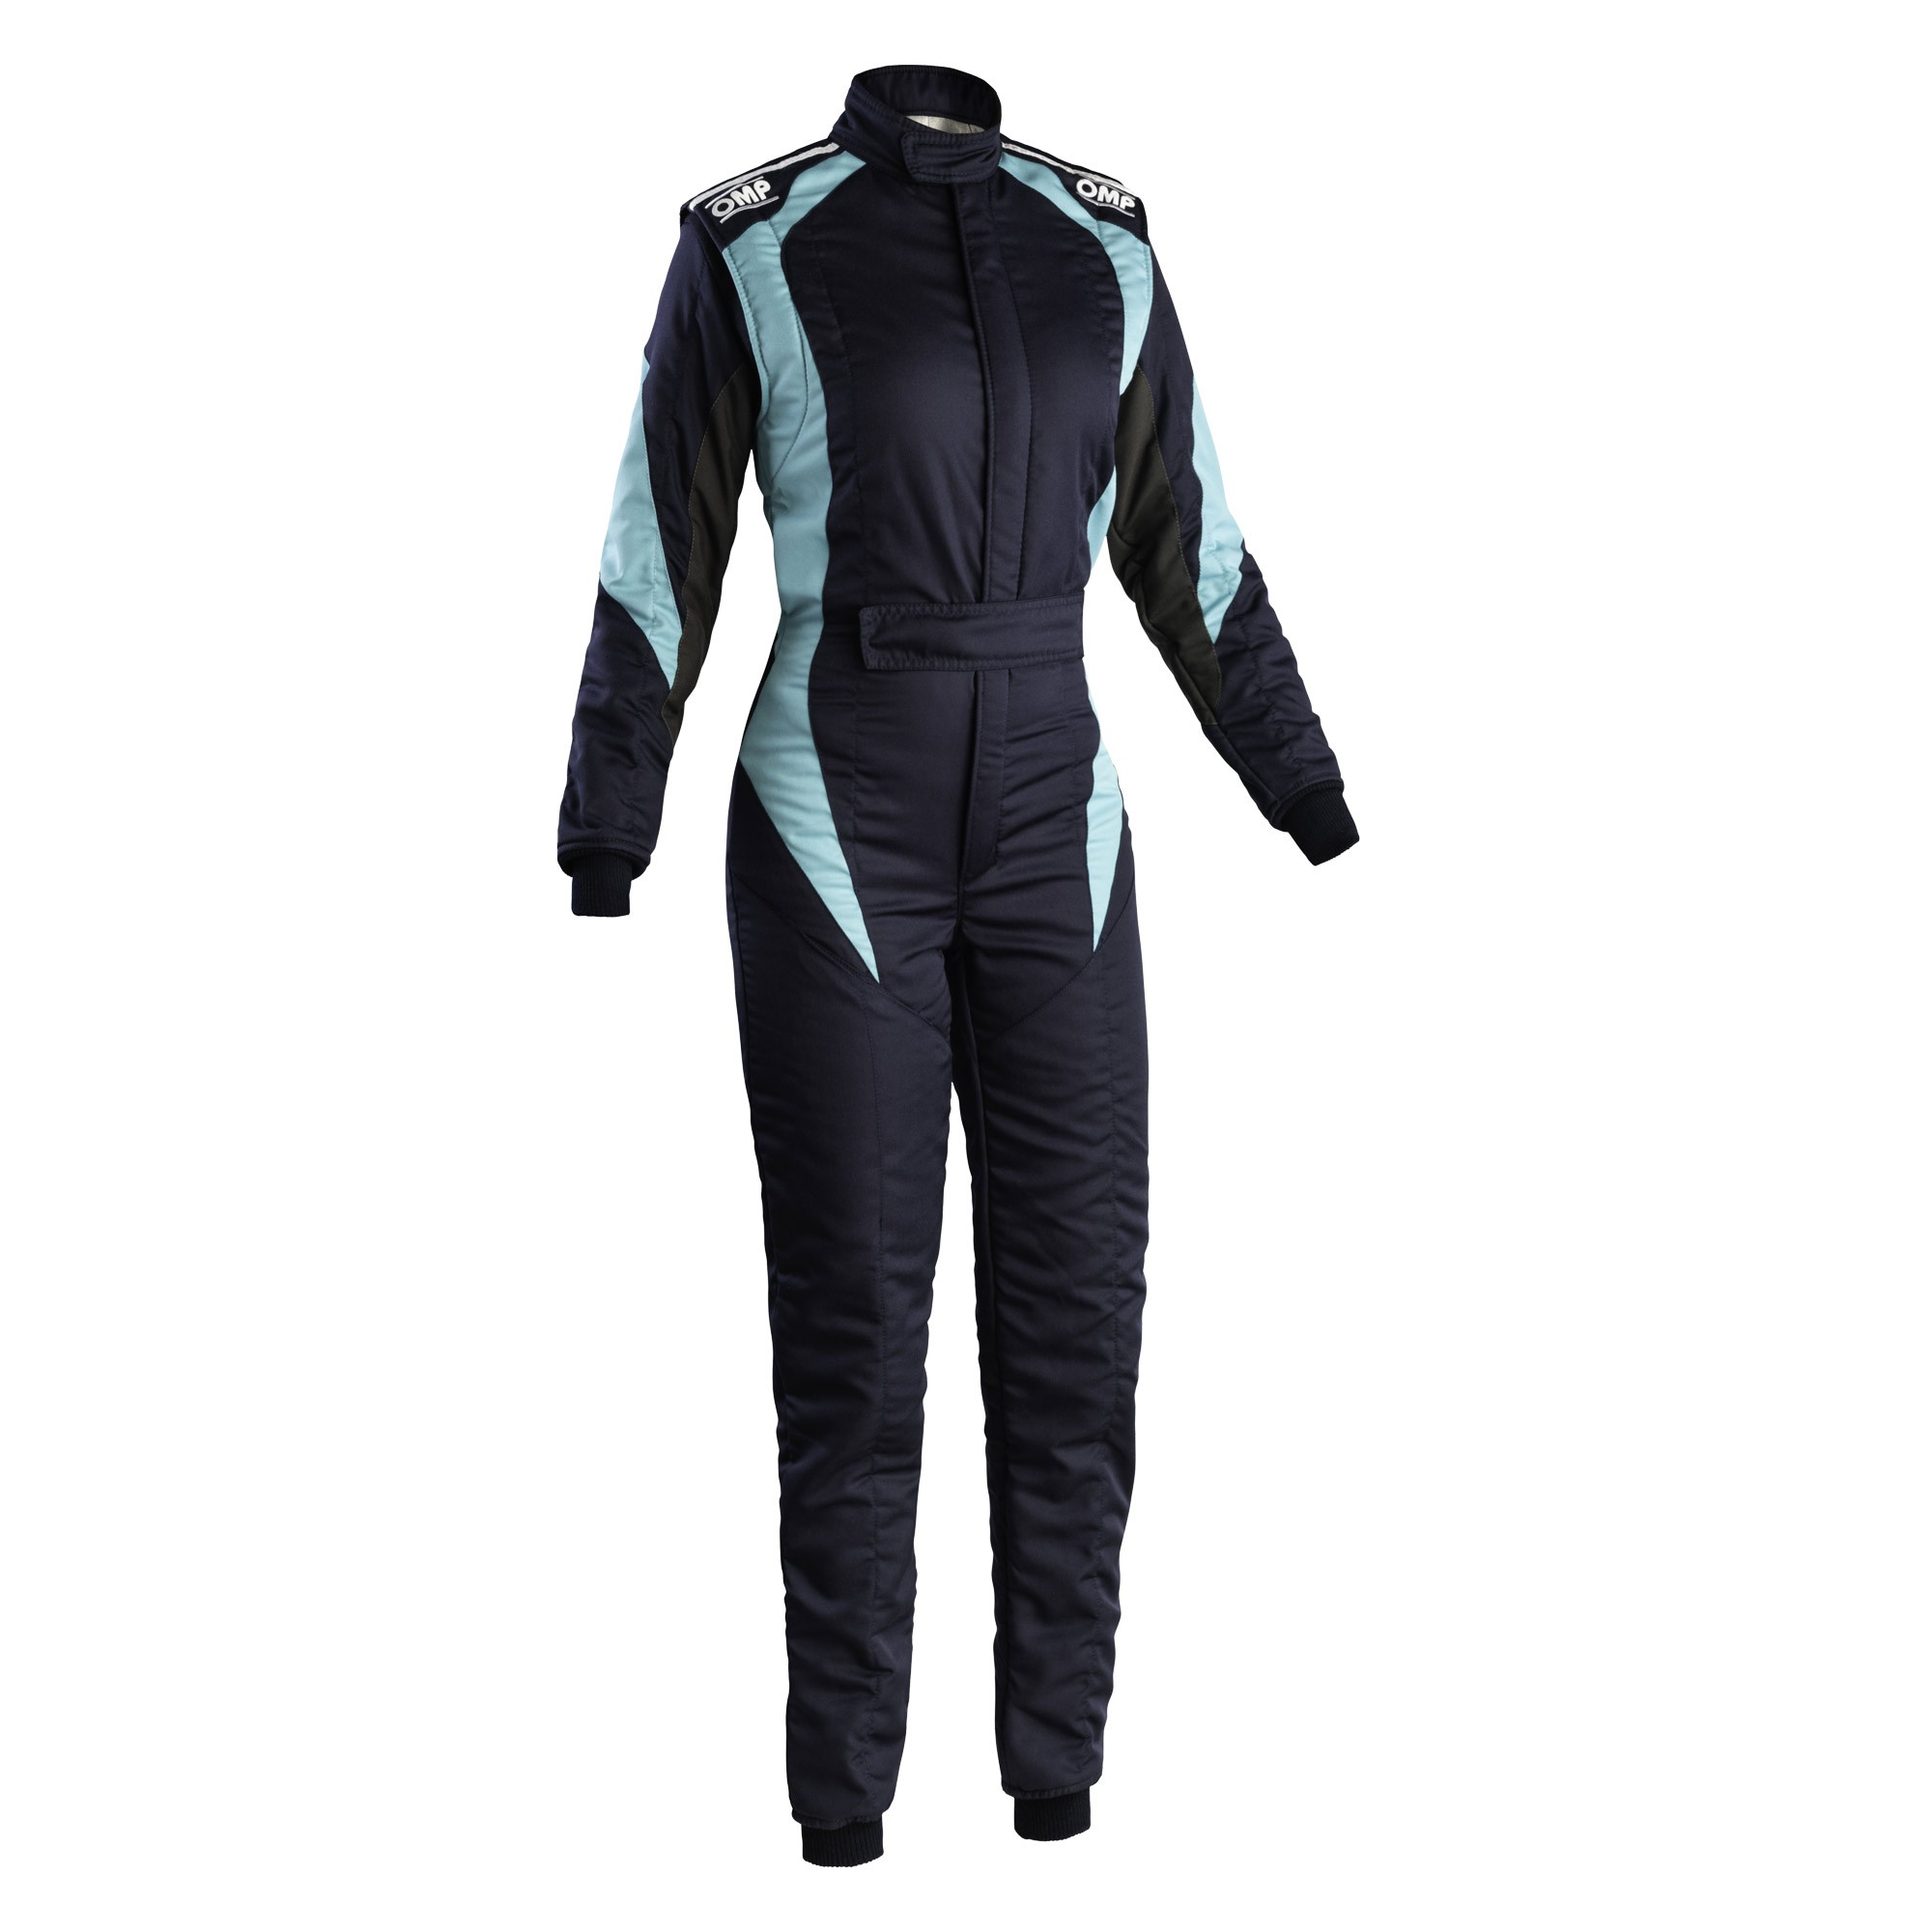 FIRST ELLE SUIT - Women's racing suit